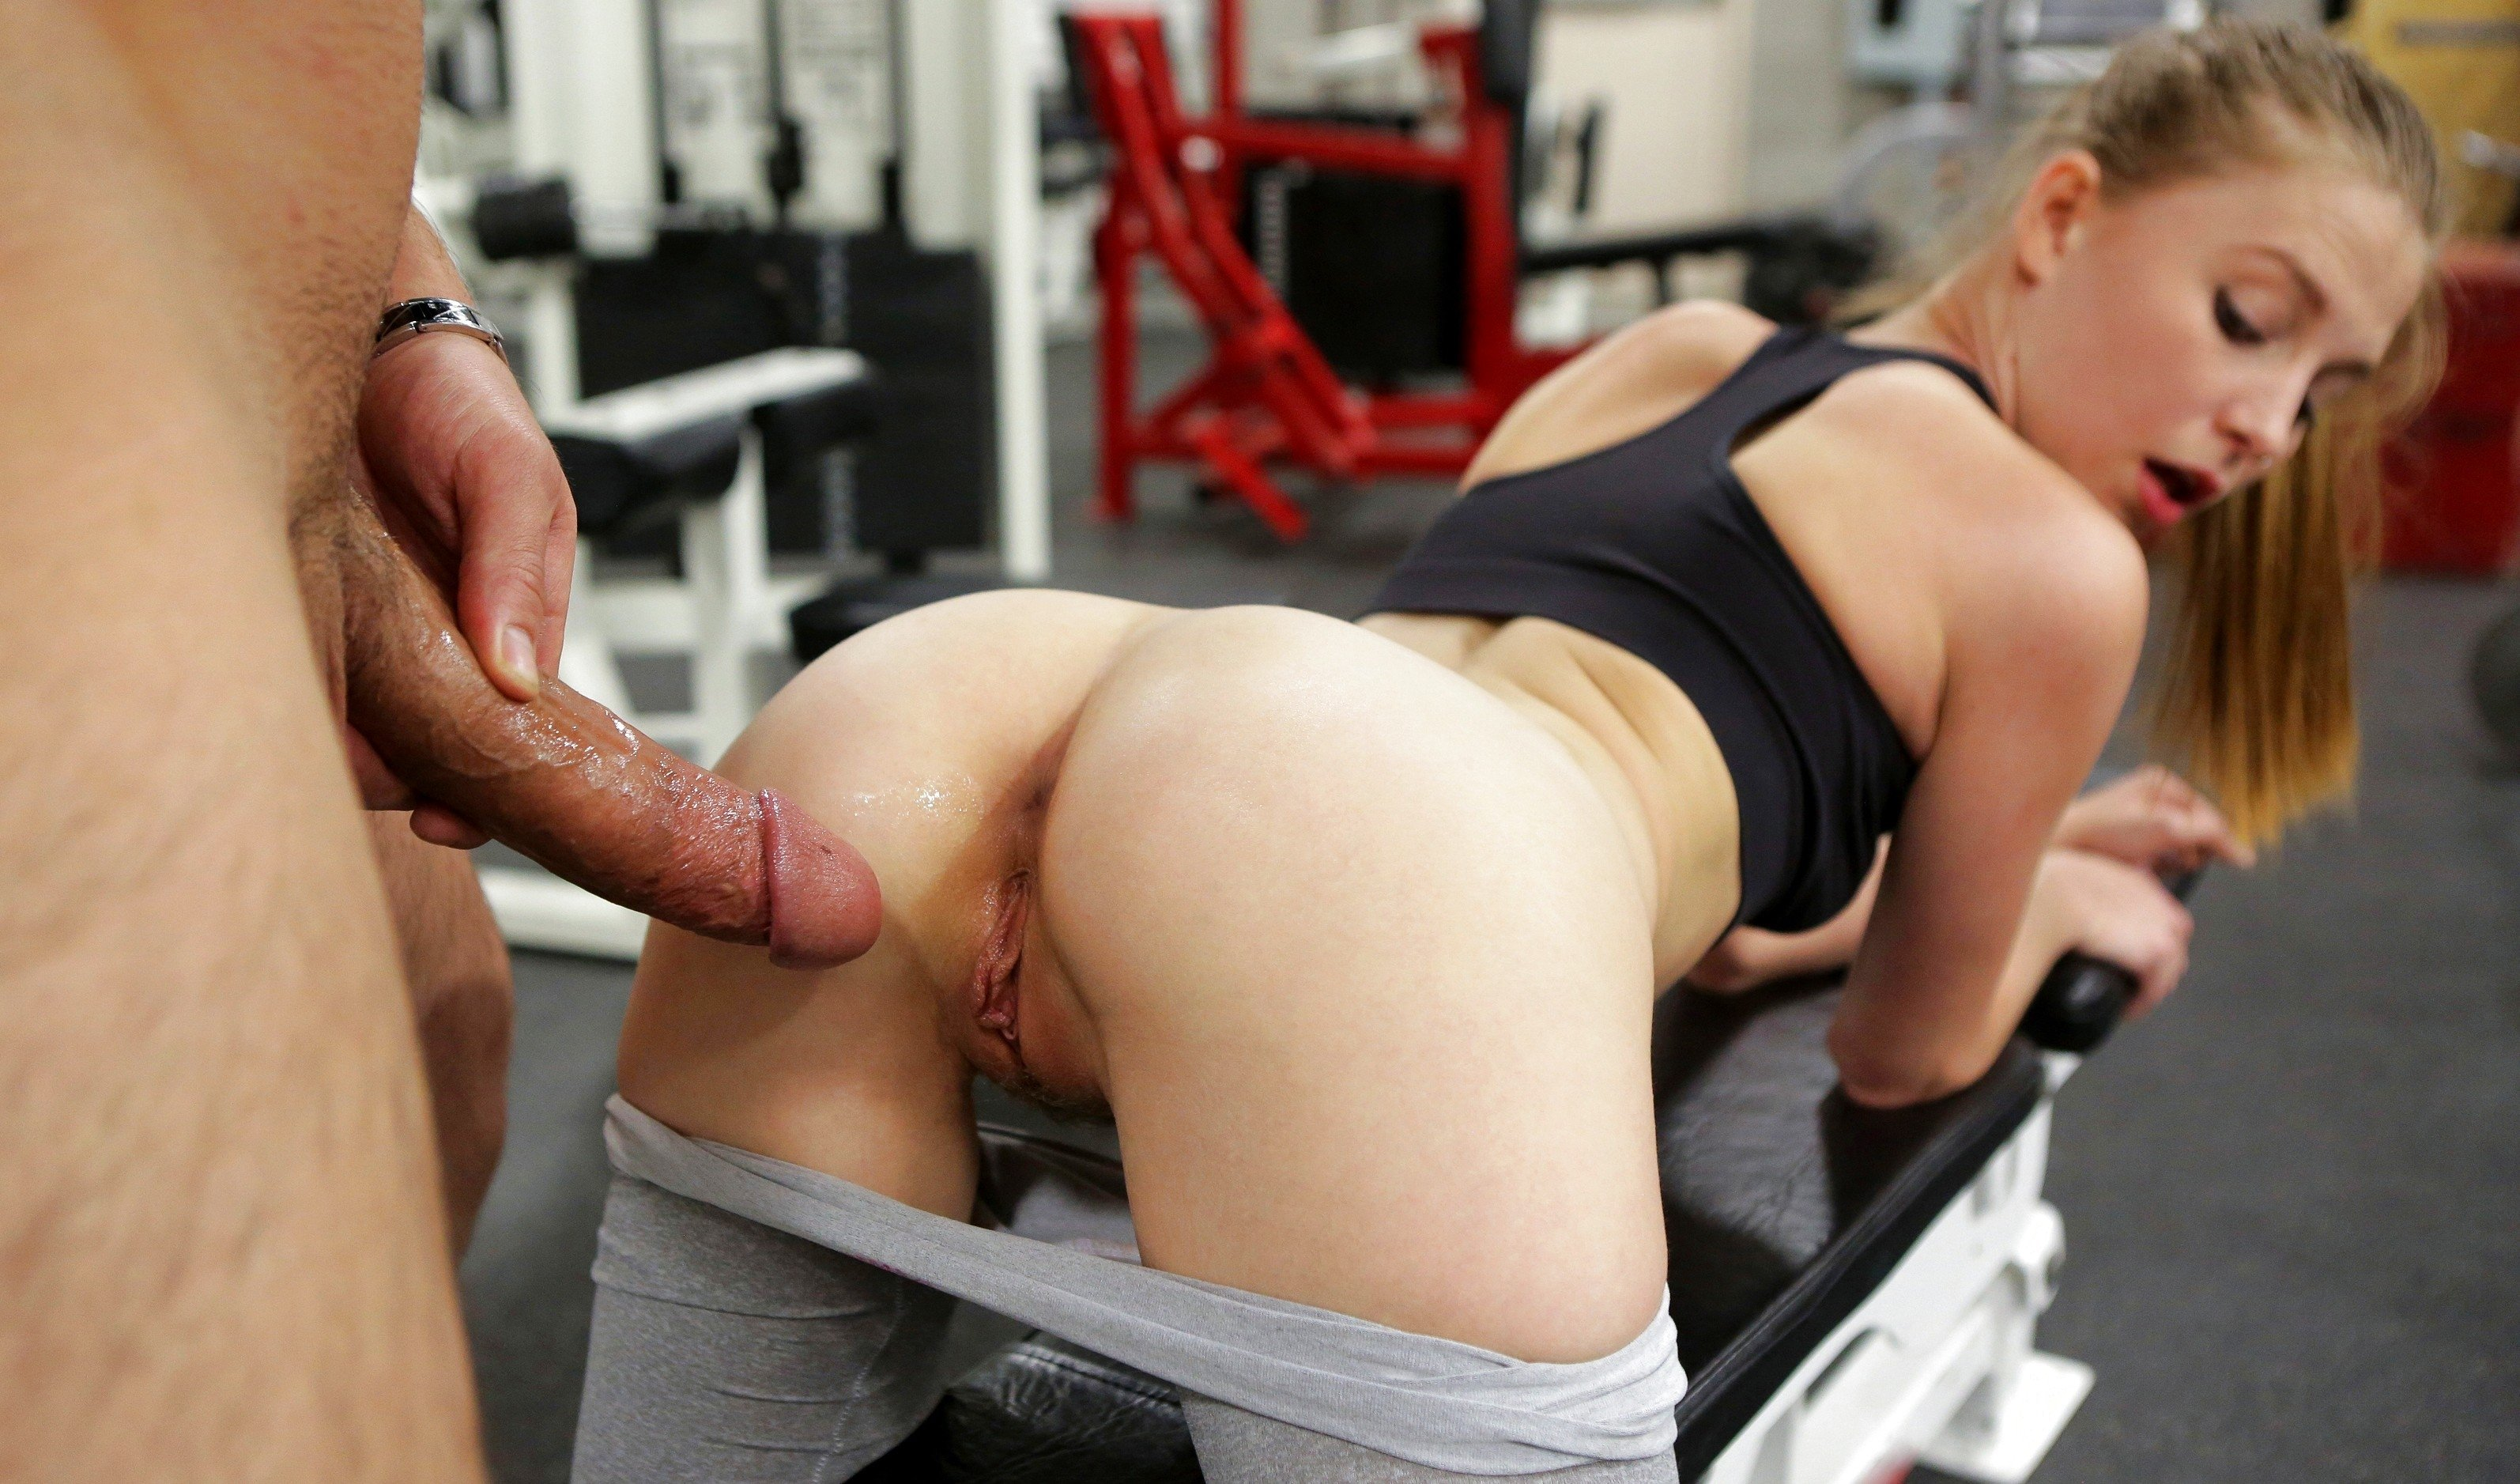 Free Hd Fit Teen Fucks Her Personal Trainer After The Gym Porn Photo